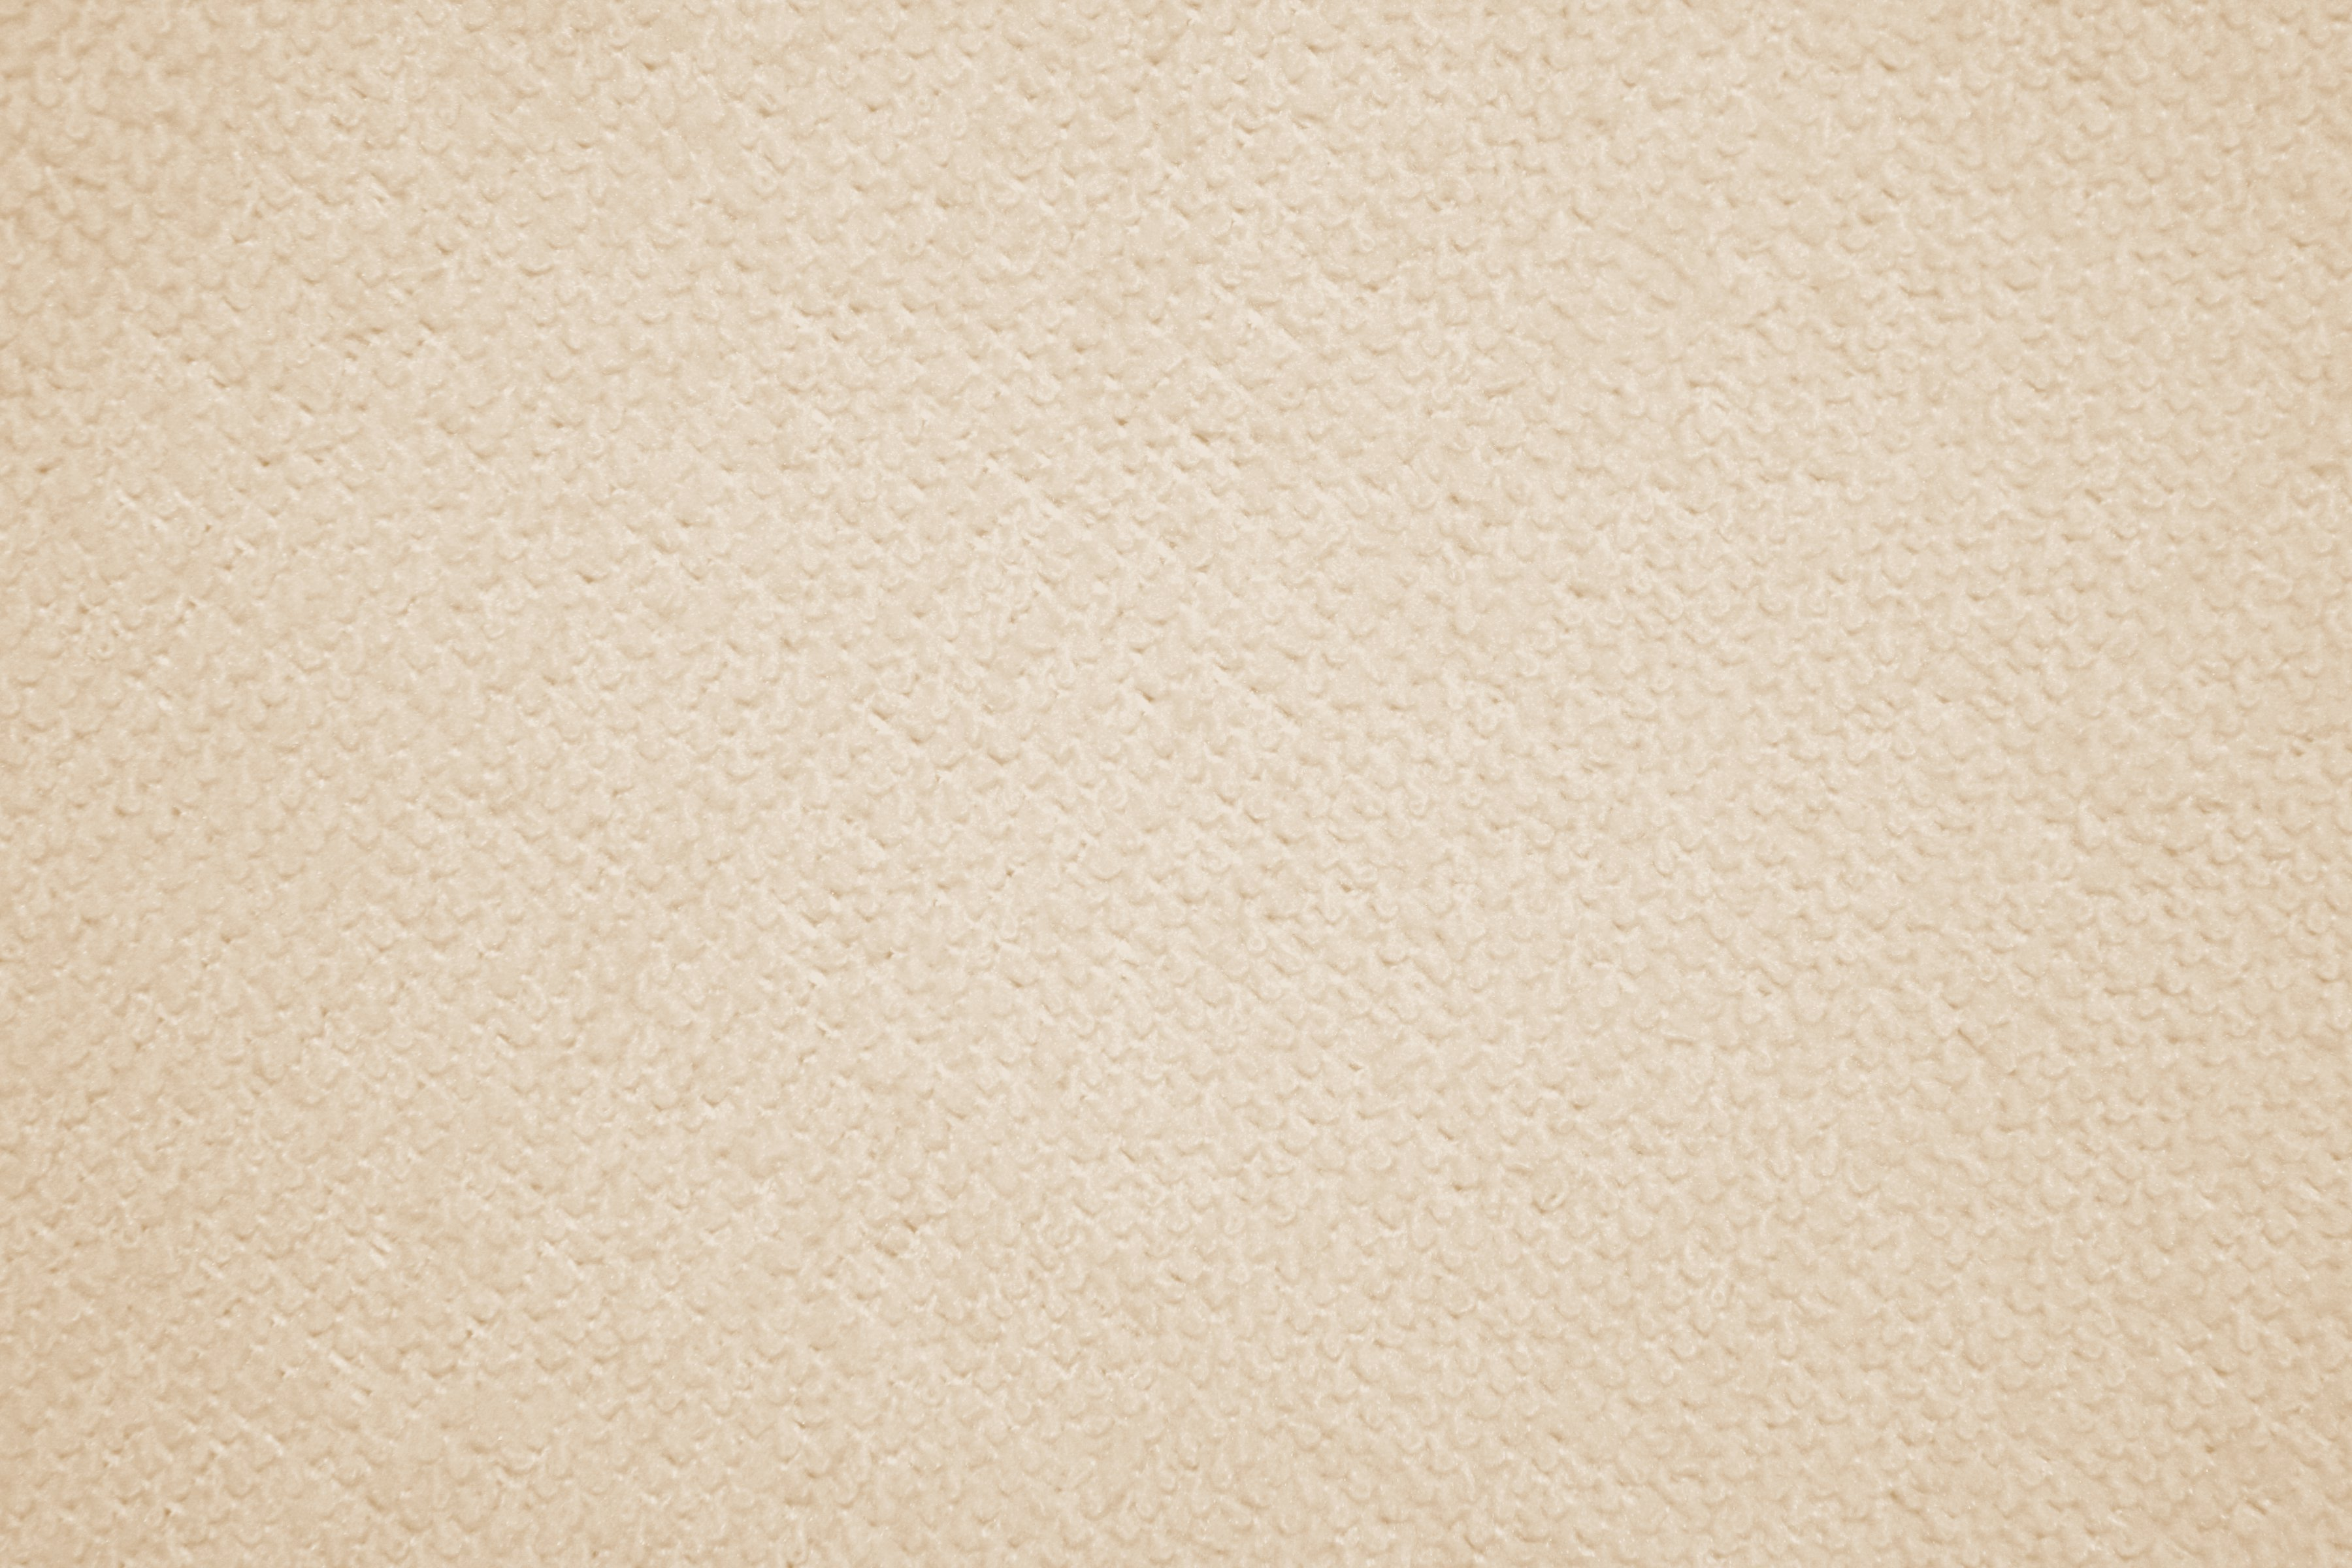 Beige Microfiber Cloth Fabric Texture Picture Free